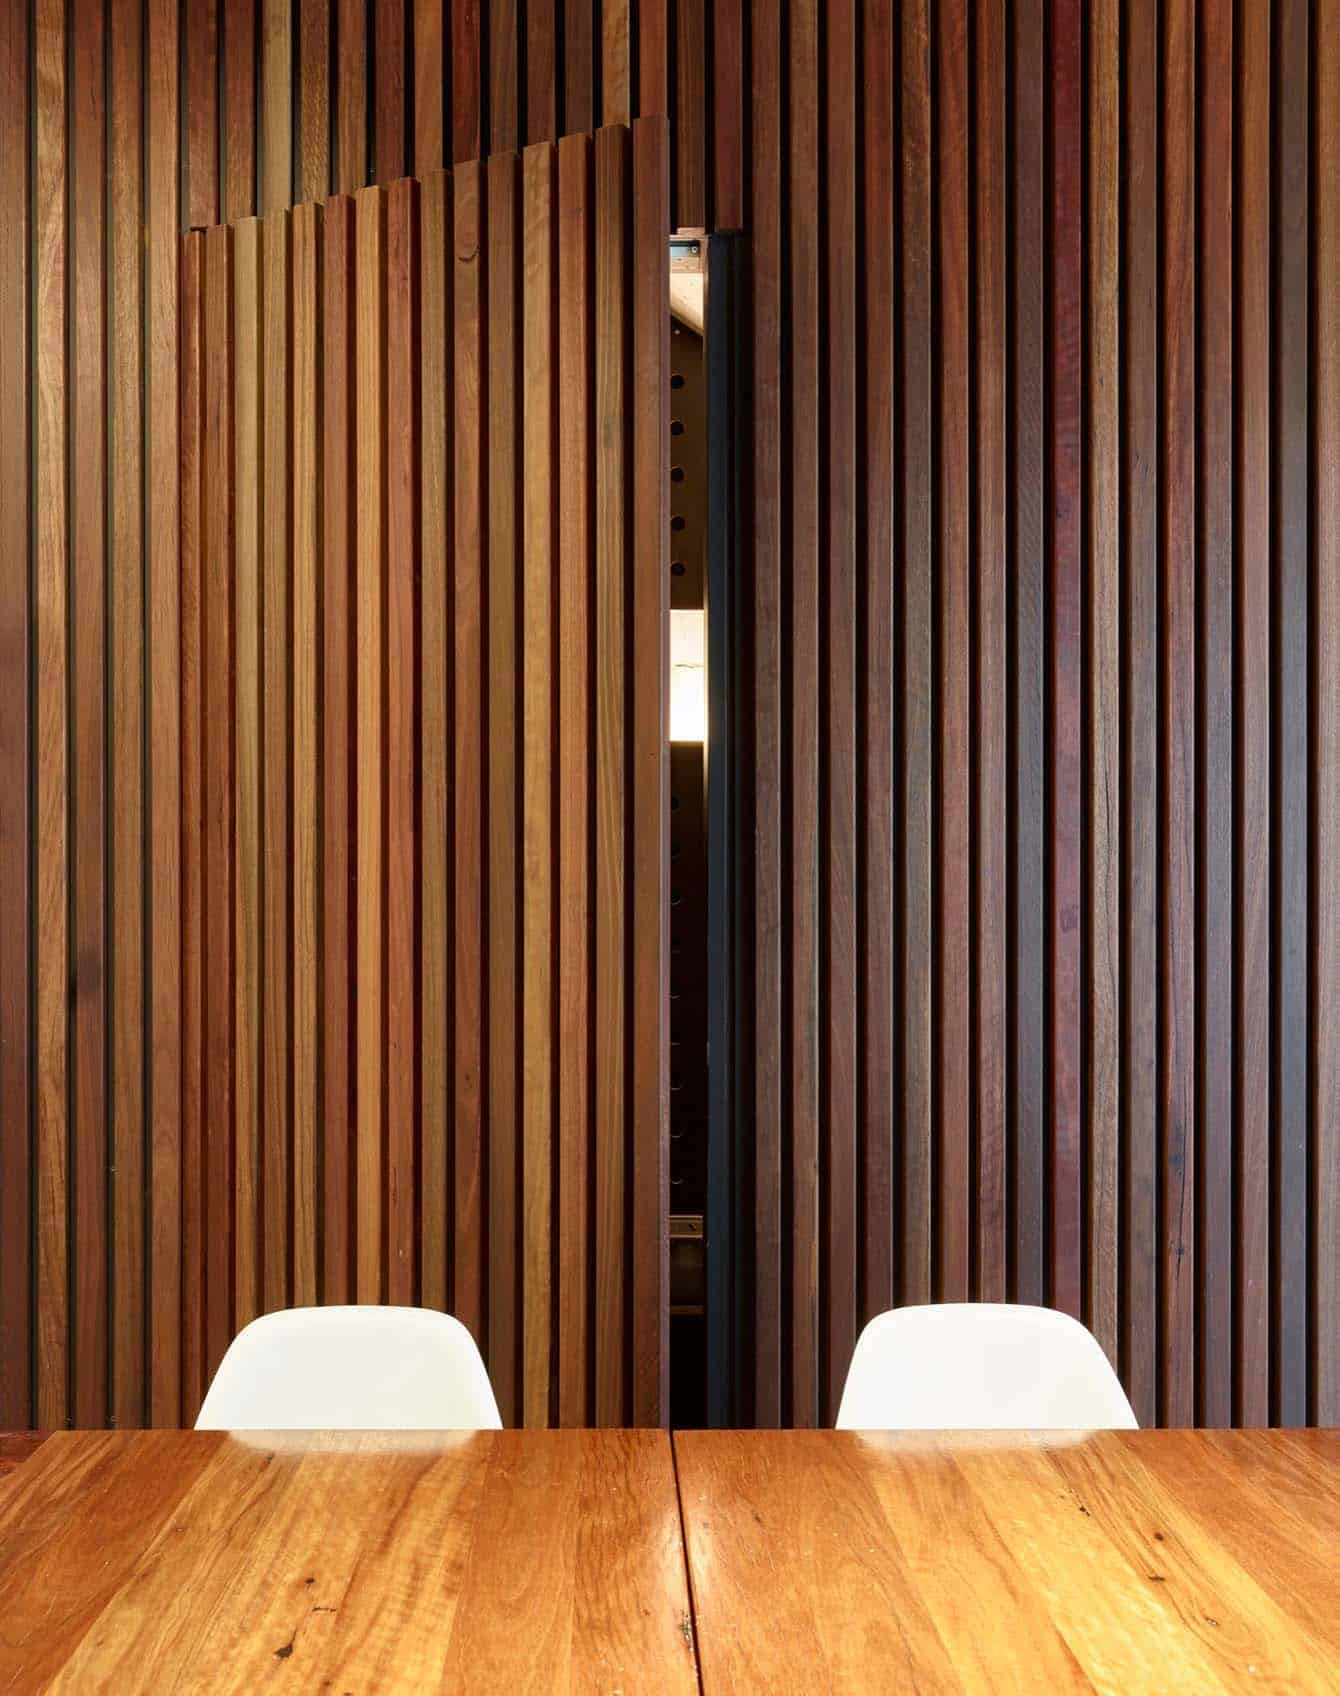 Architecture-Contemporary-Home-ONeill Architecture-10-1 Kindesign